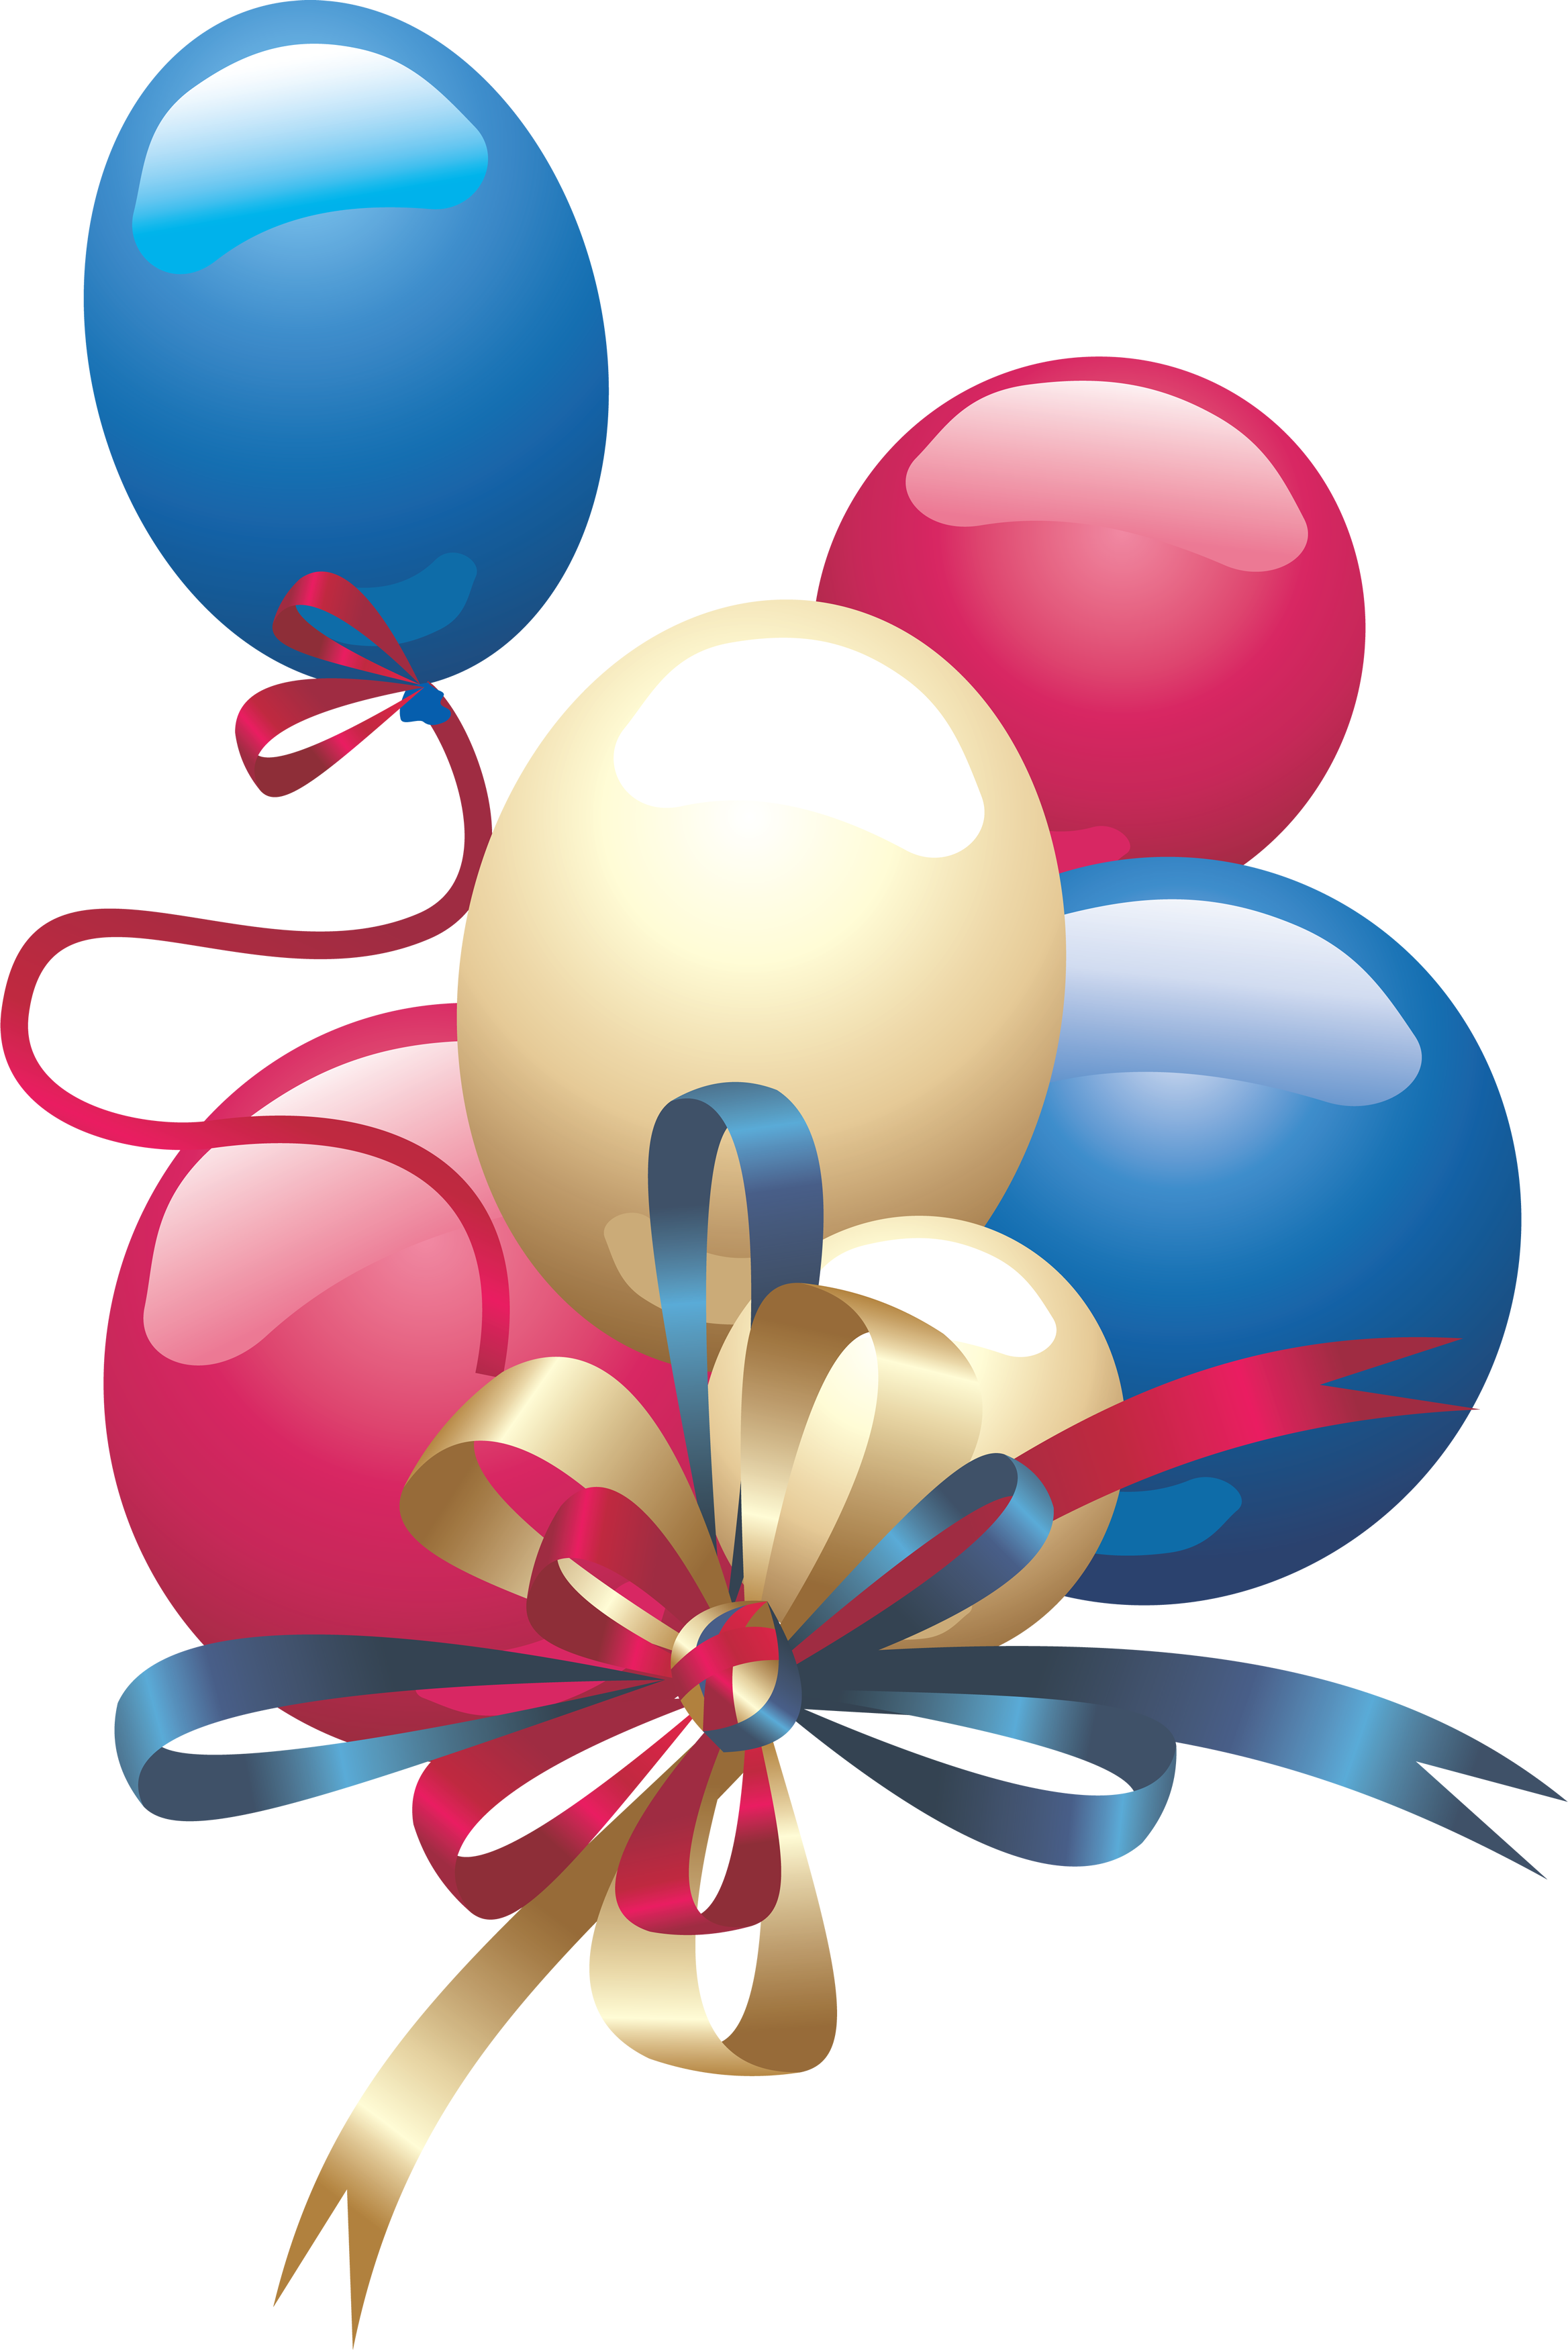 Celebrate clipart clear background. Balloon png images free